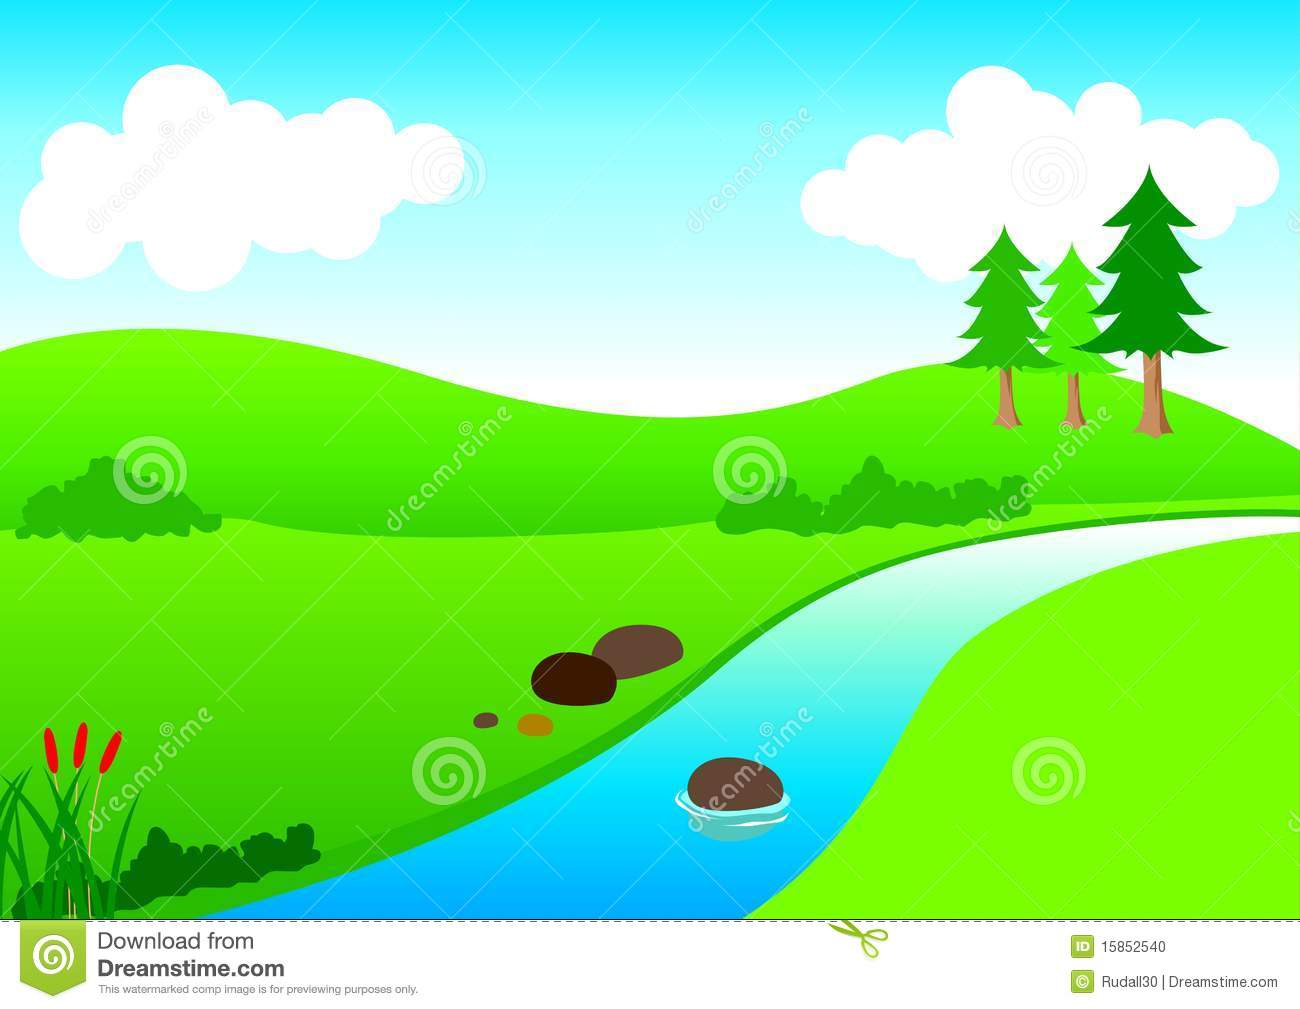 river view stock vector illustration of cartoon mountain